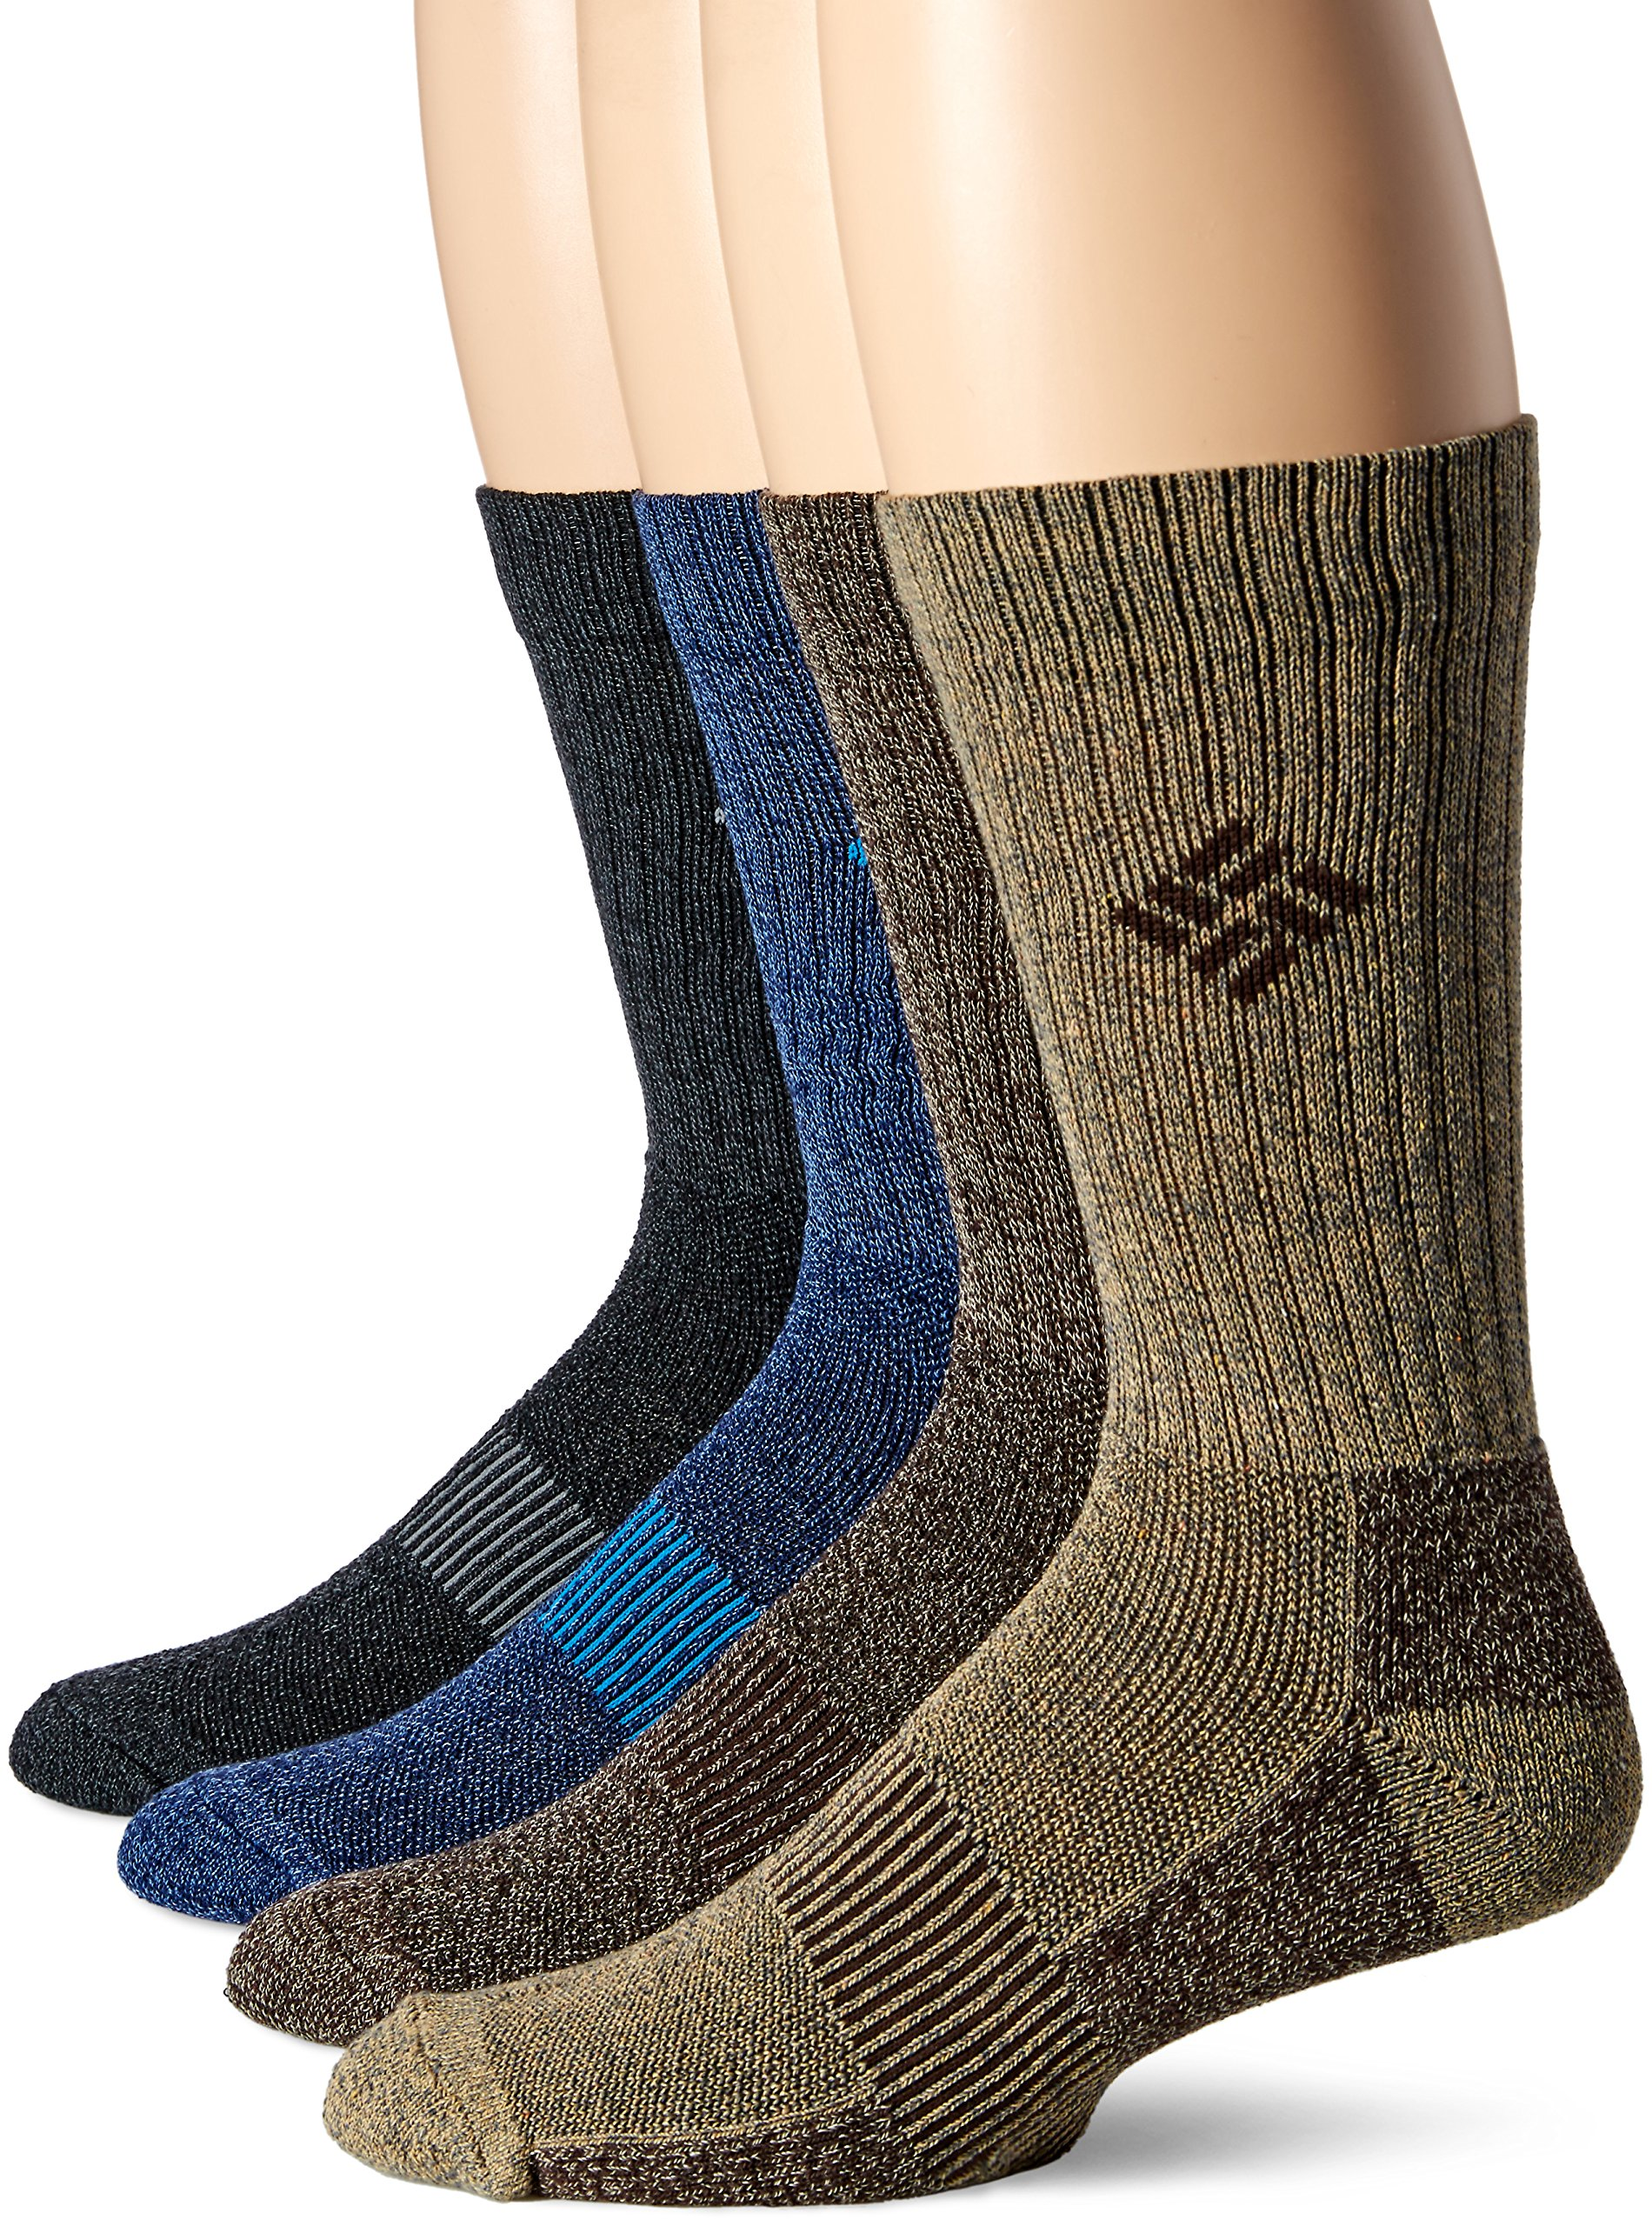 Columbia Men's 4 Pack Moisture Control Ribbed Crew, Assorted, Sock Size: 10-13/Shoe Size:9-11 by Columbia